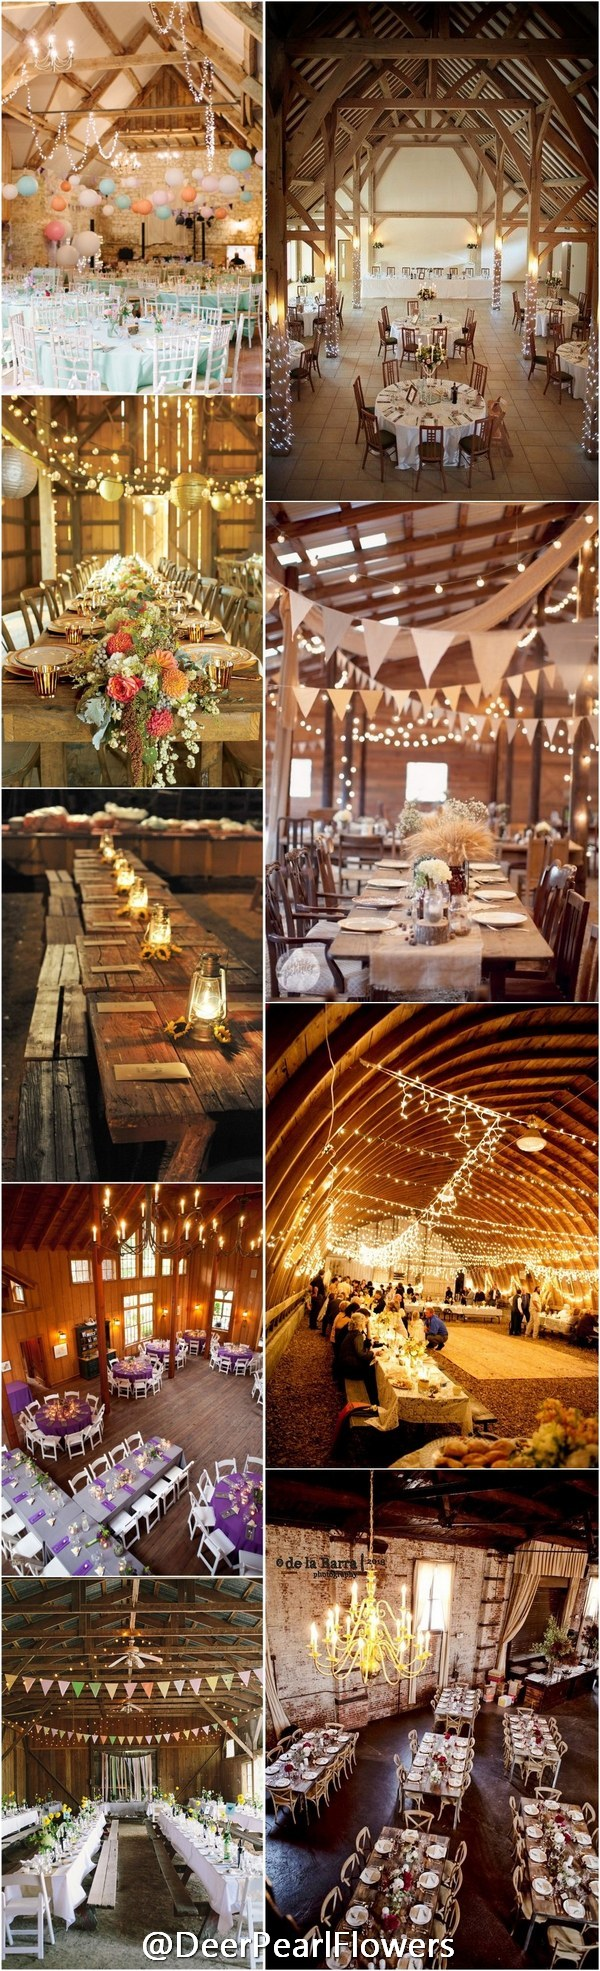 outdoor wedding decoration ideas for fall%0A    Barn Wedding Reception Table Decoration Ideas